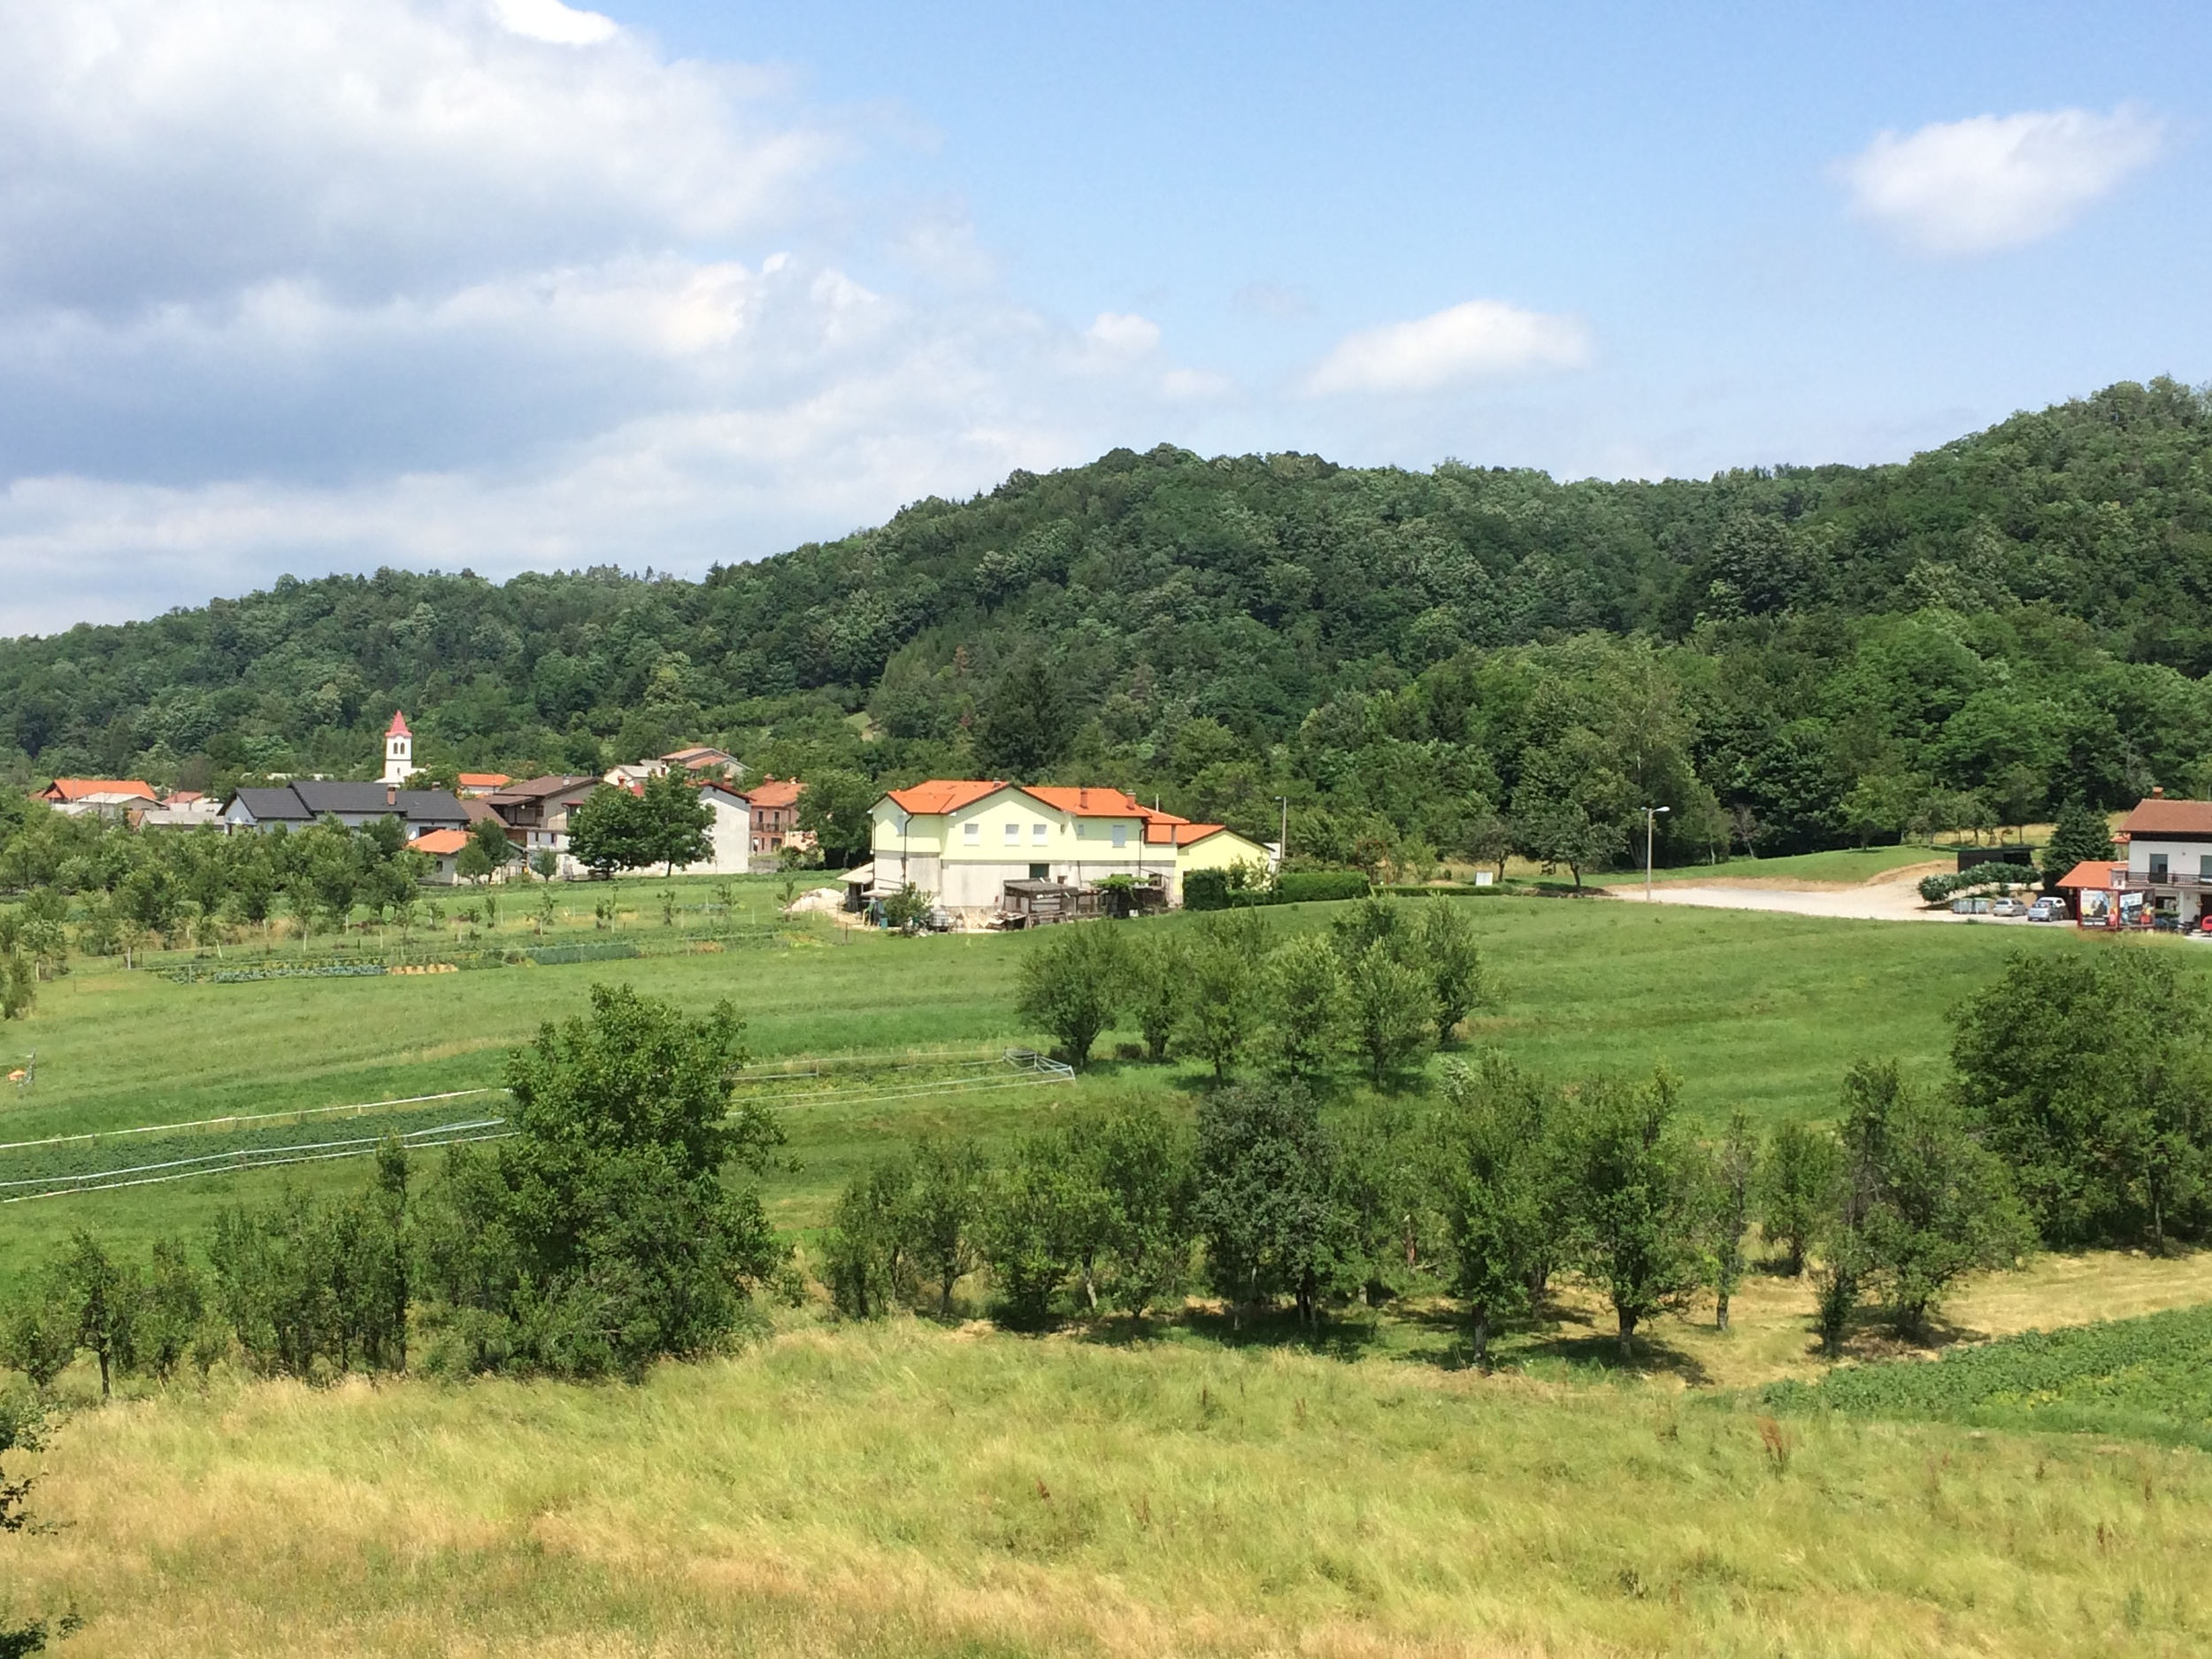 Slovenia - perfectly nice and very pretty in a national park kind of way